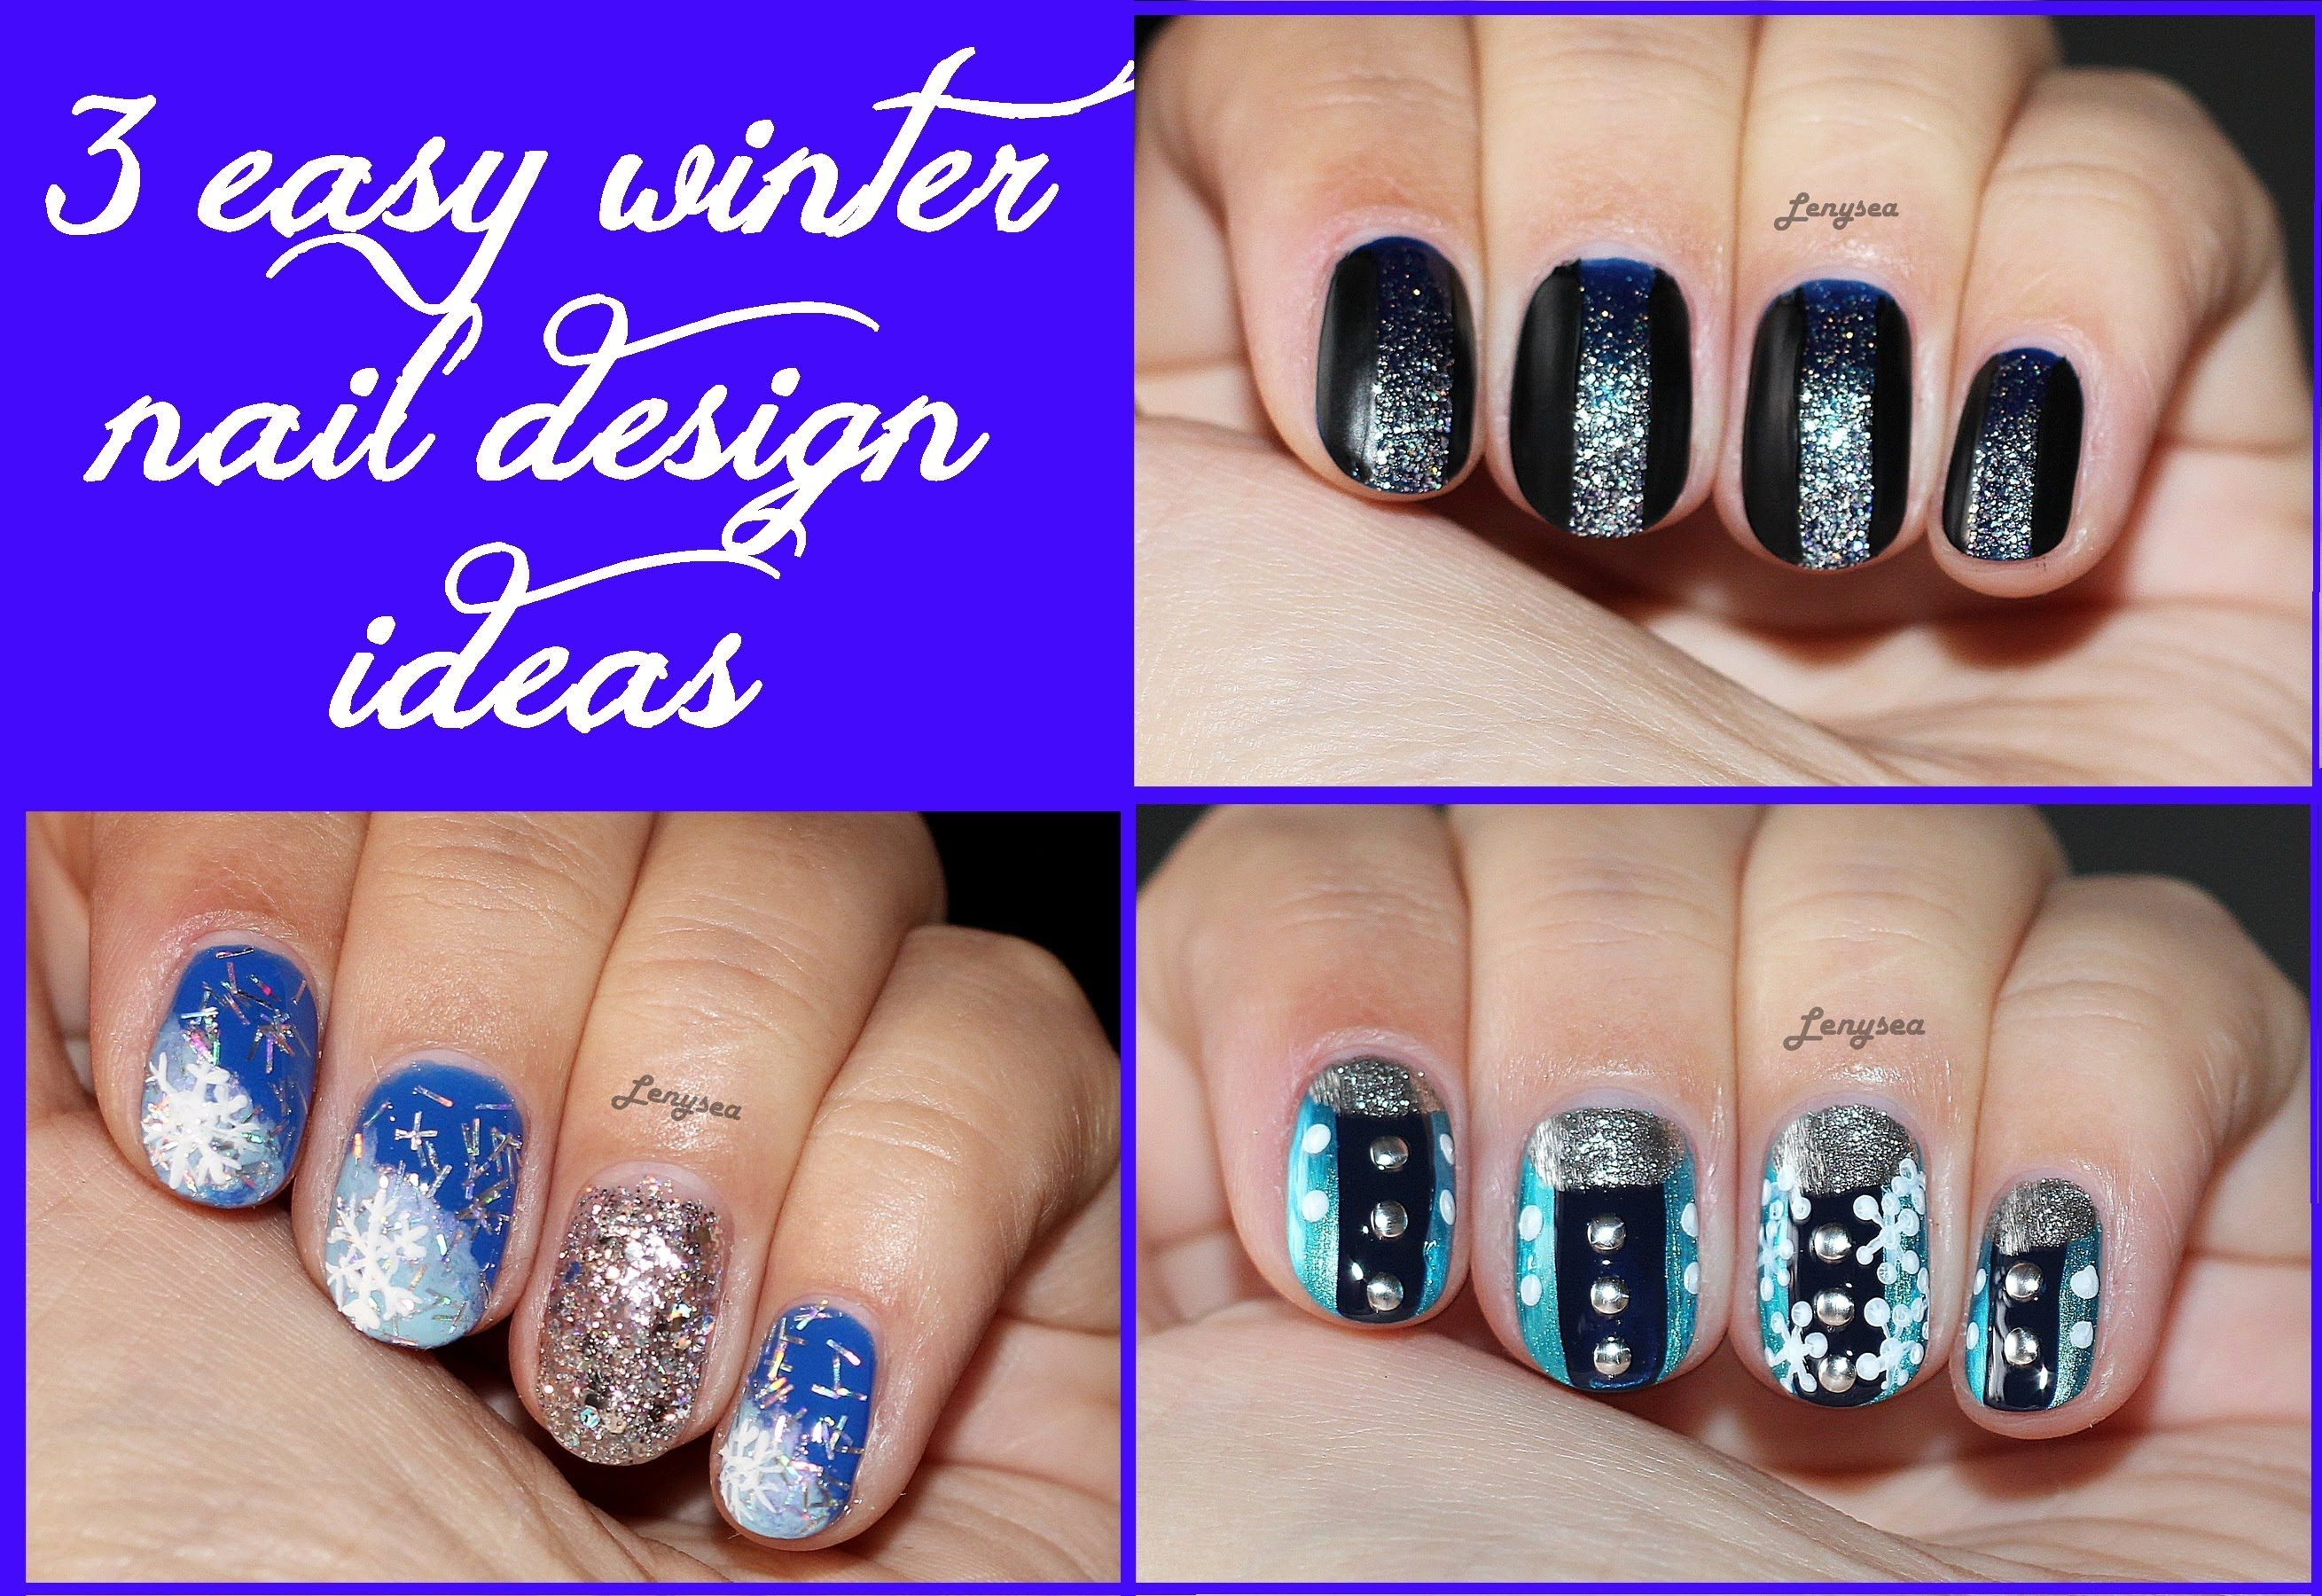 Three Easy Winter Nail Designs for Short Nails 3